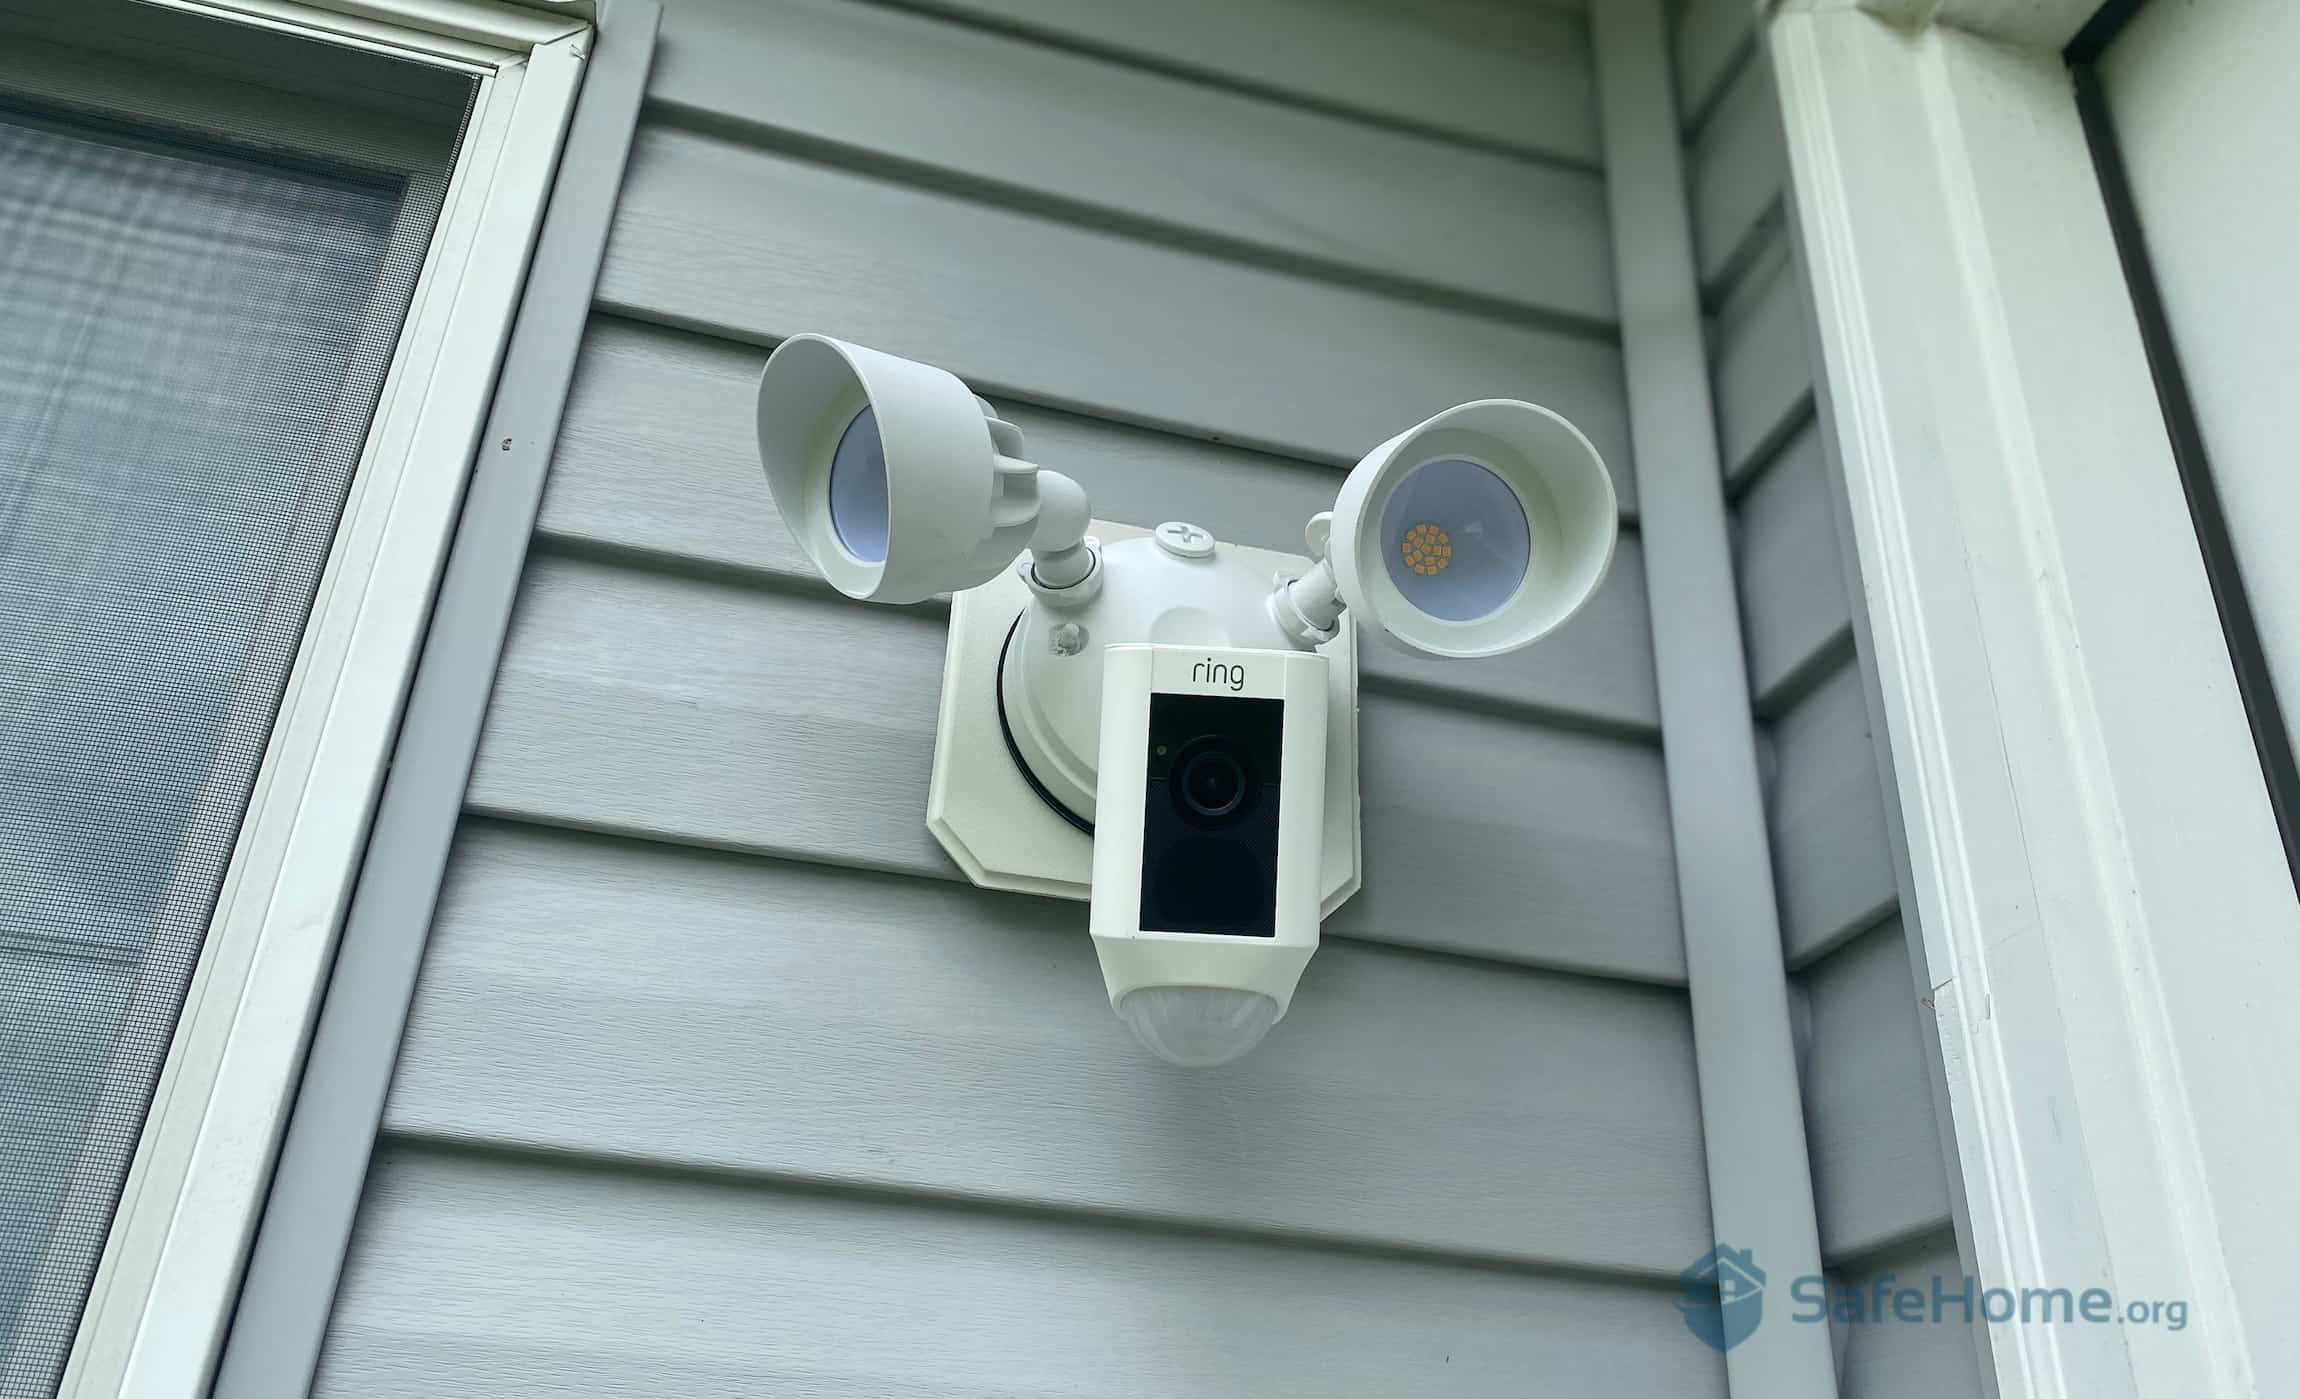 Ring Floodlight Cam Mounted Outside